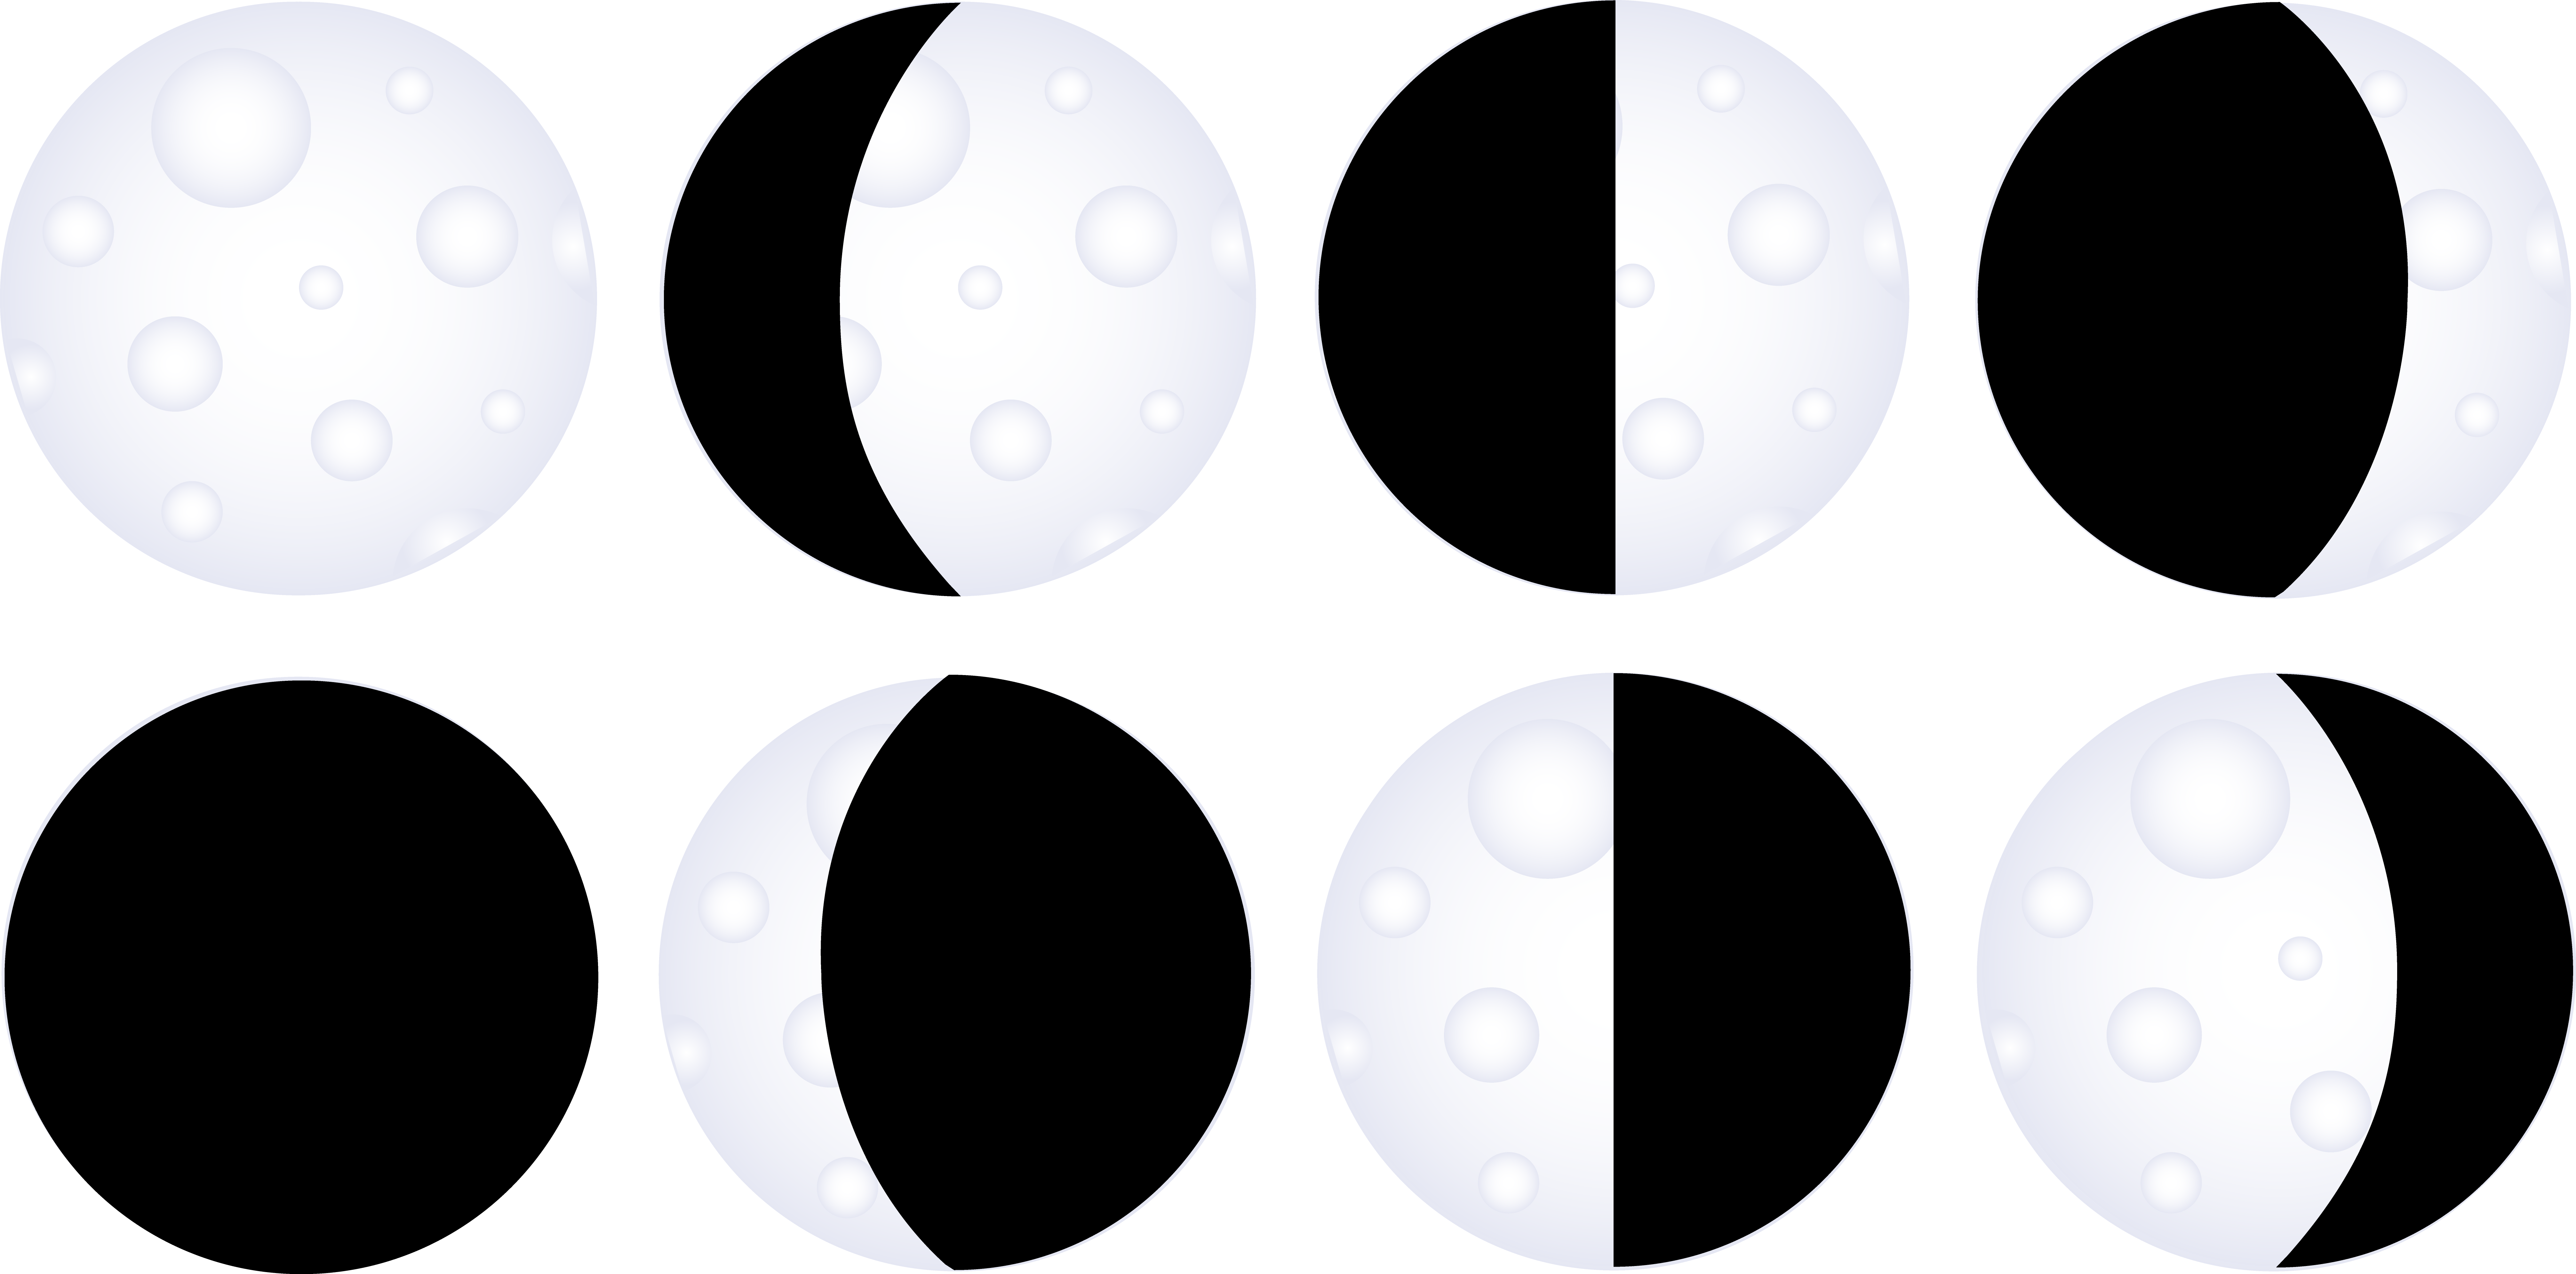 30 moon phases clip art.   Clipart Panda - Free Clipart Images